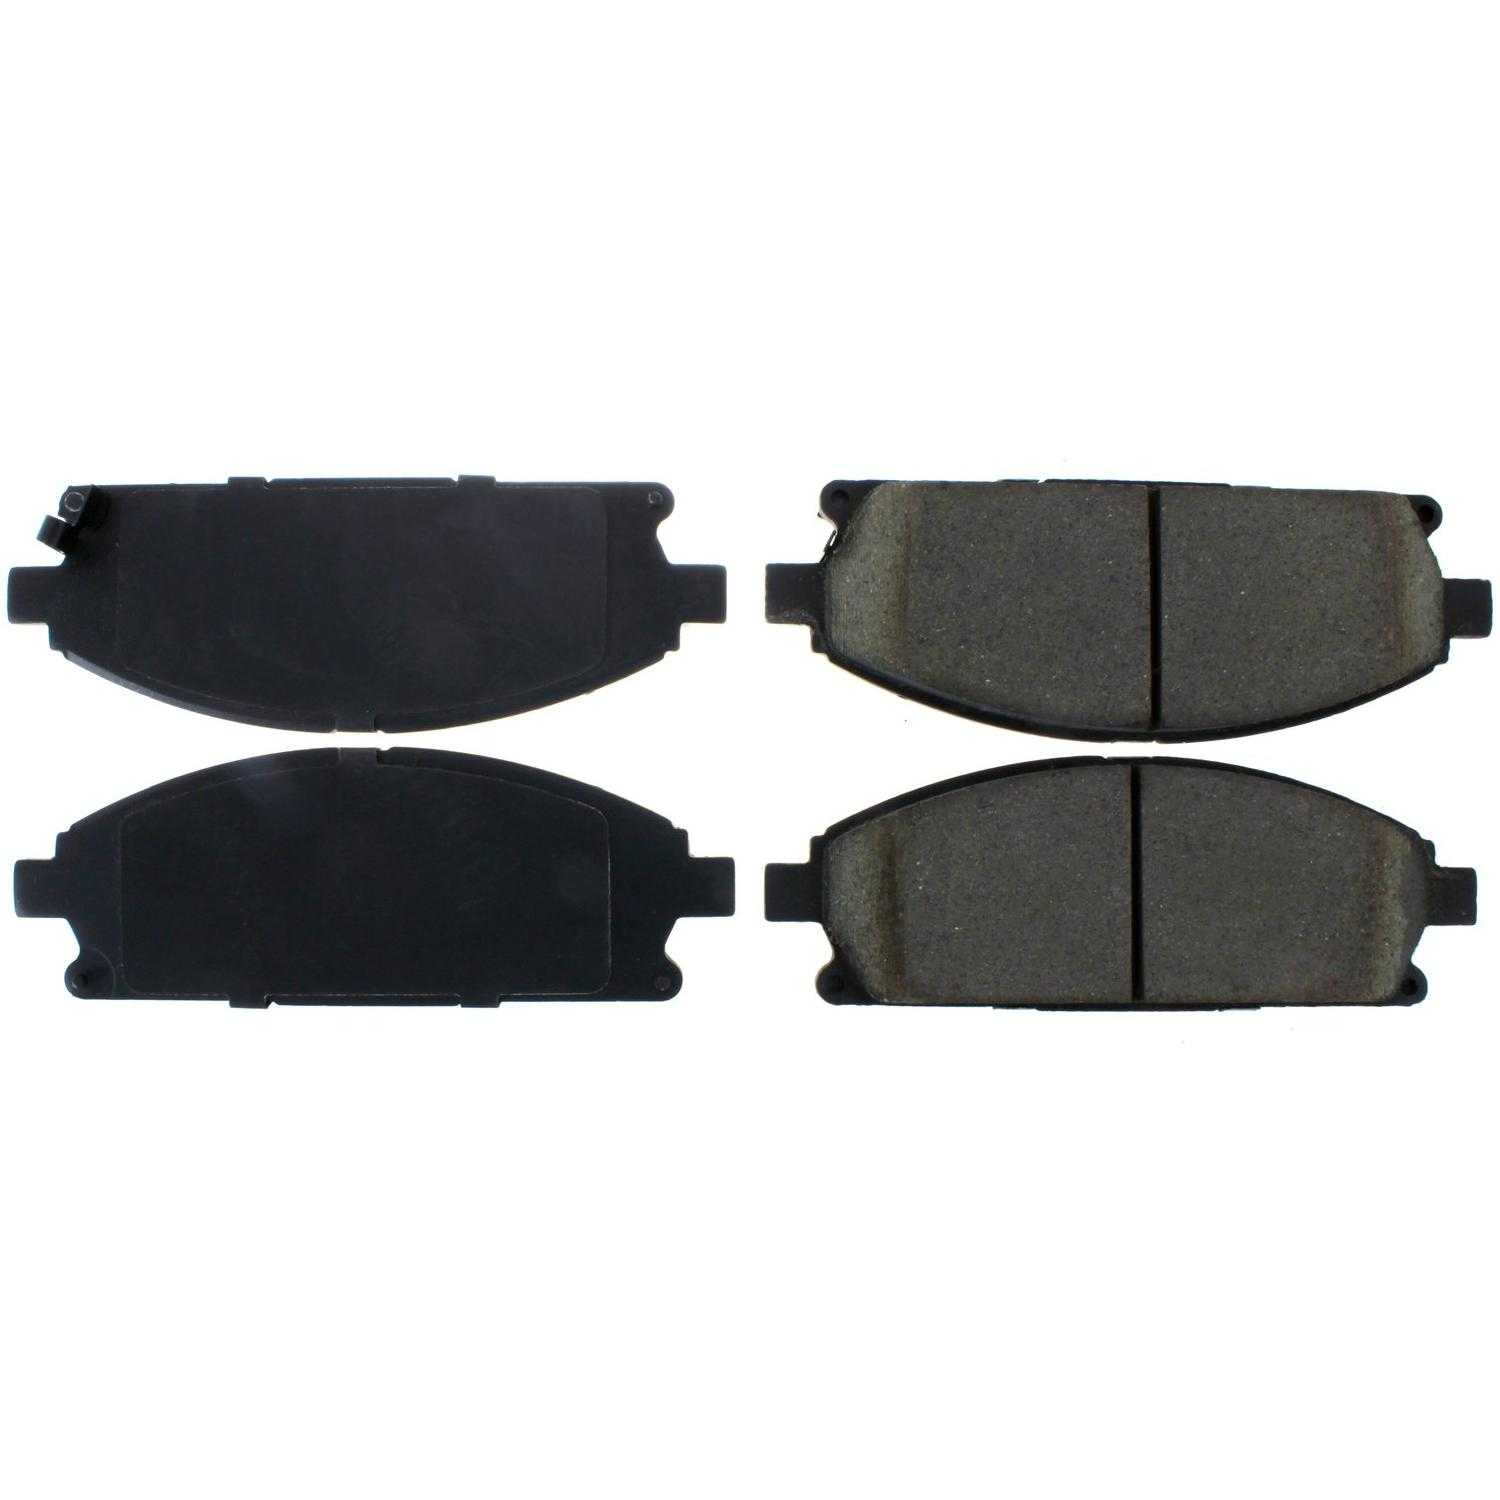 Centric Parts Brake Pads Front Rear For 2003-2006 Acura